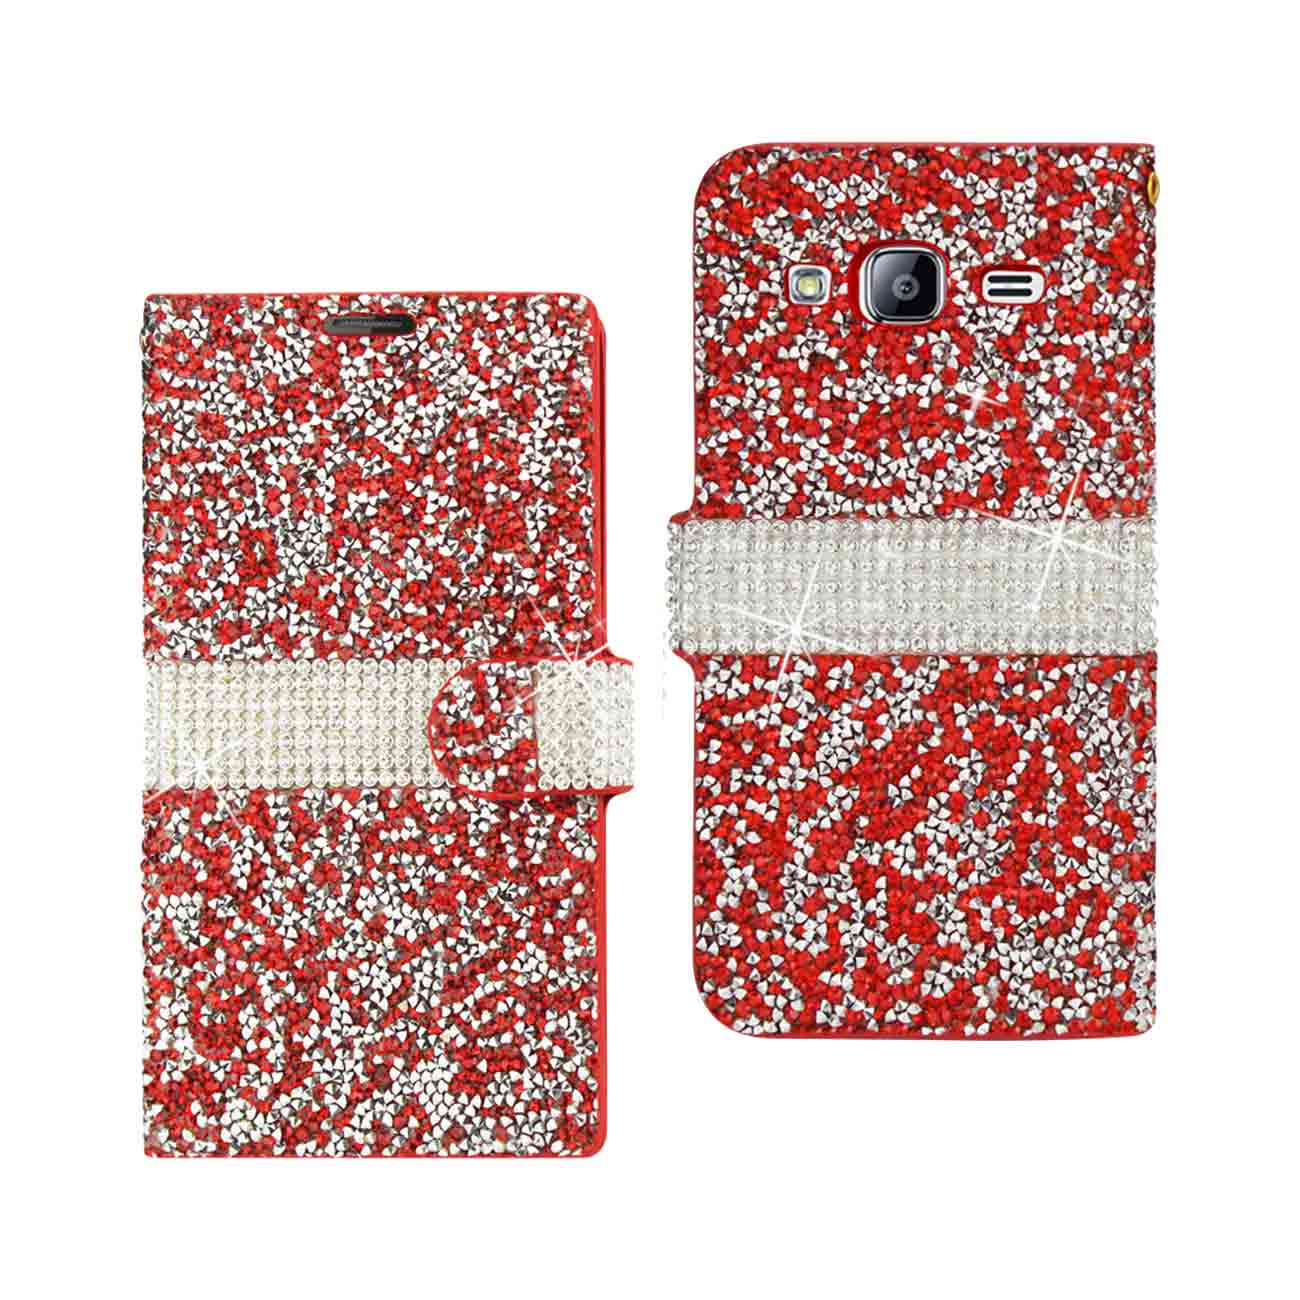 SAMSUNG GALAXY J3 JEWELRY RHINESTONE WALLET CASE IN RED